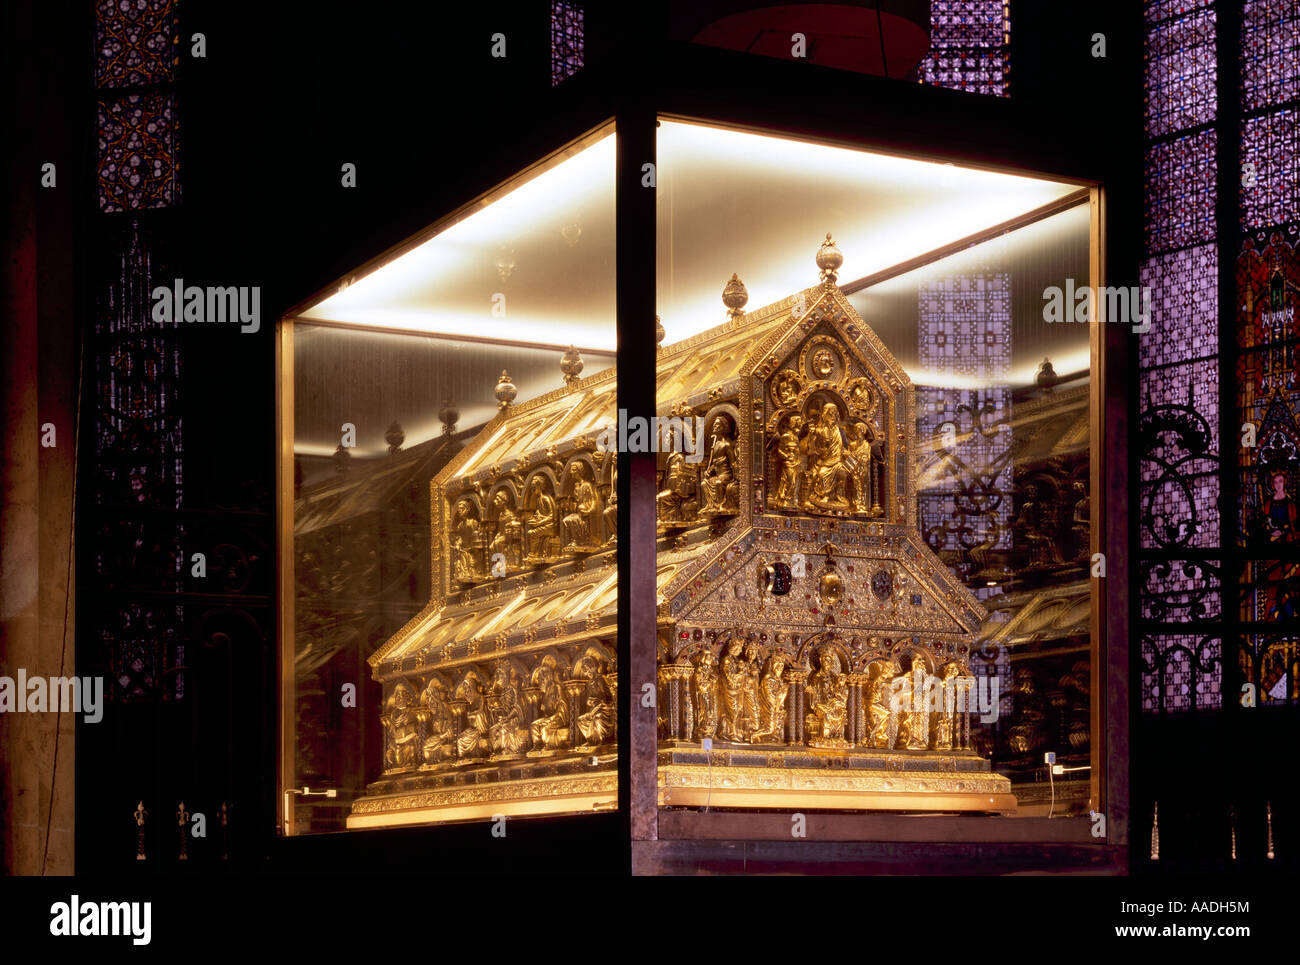 Koln Dom Dreikonigenschrein Stock Photo Alamy